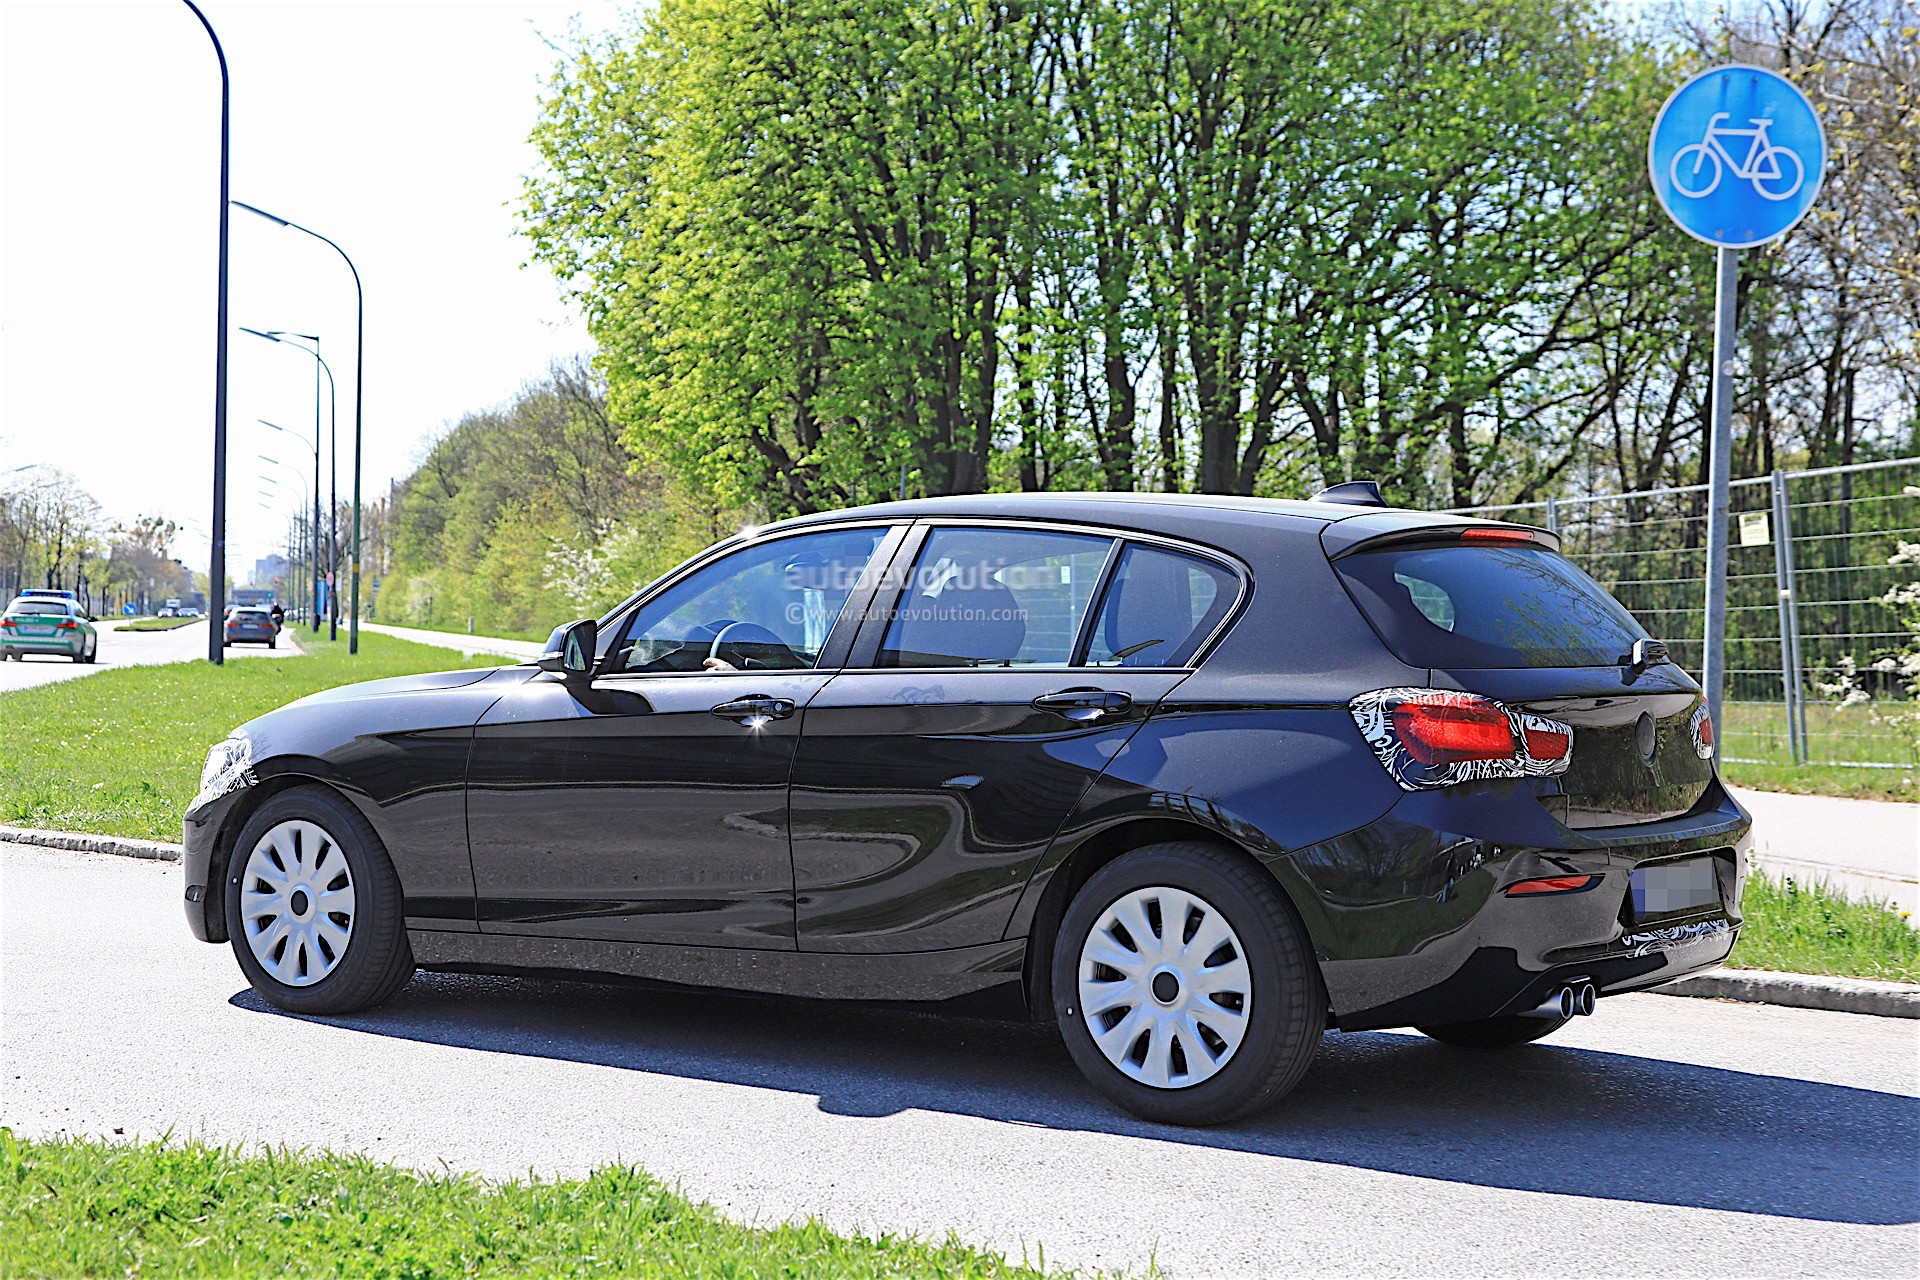 2018 bmw 1 series facelift spied with less camouflage in germany autoevolution. Black Bedroom Furniture Sets. Home Design Ideas